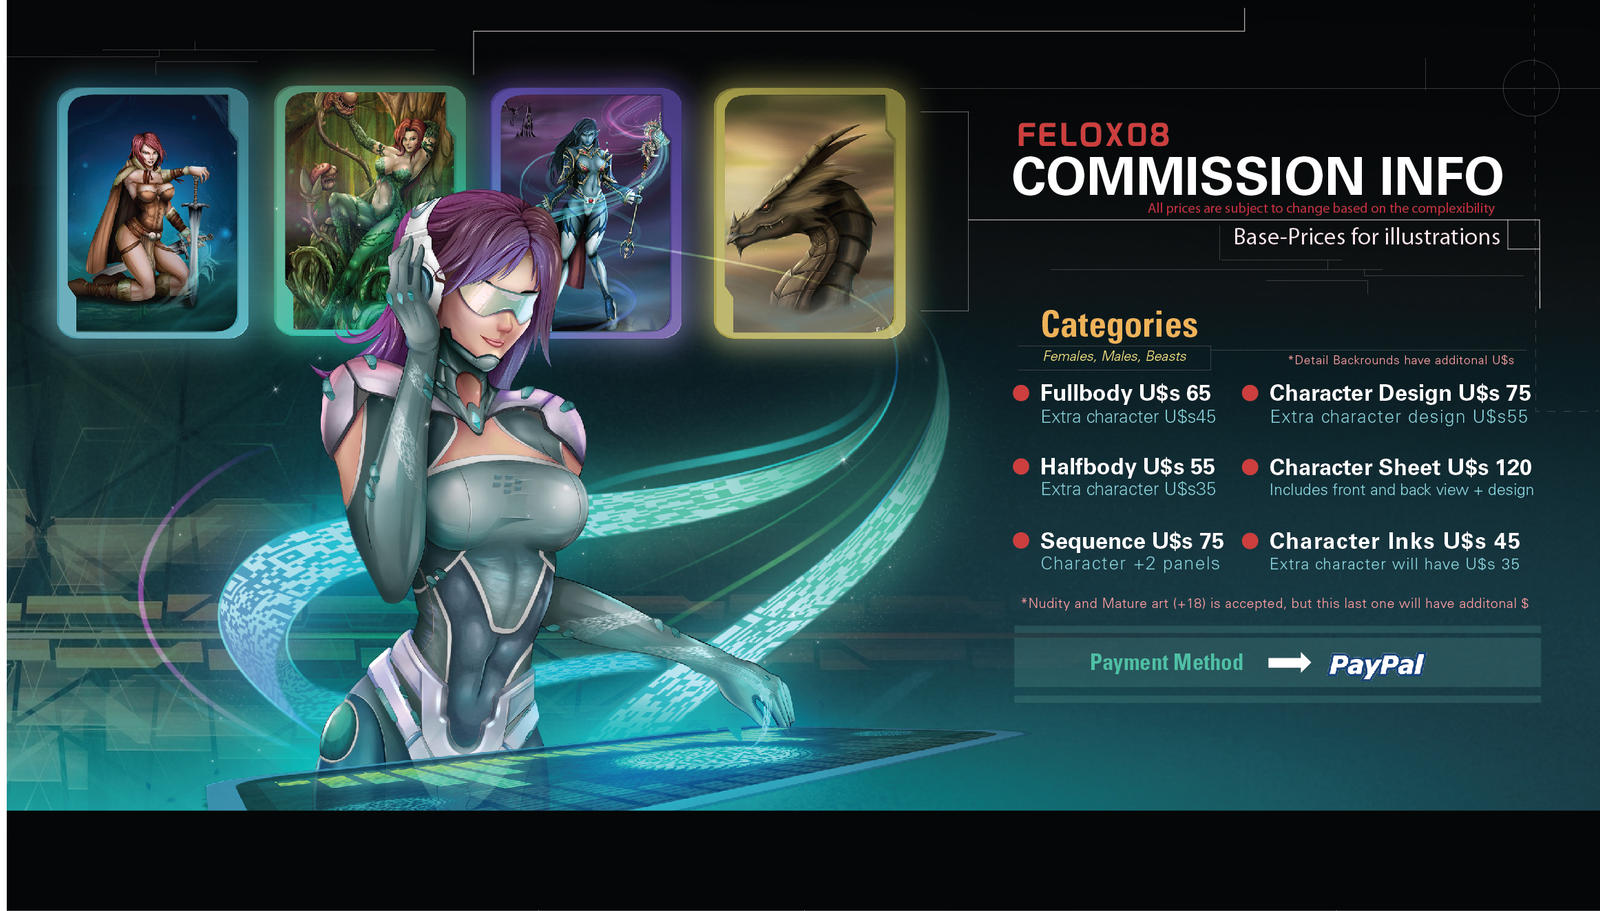 Felox08 Commissions updated by Felox08